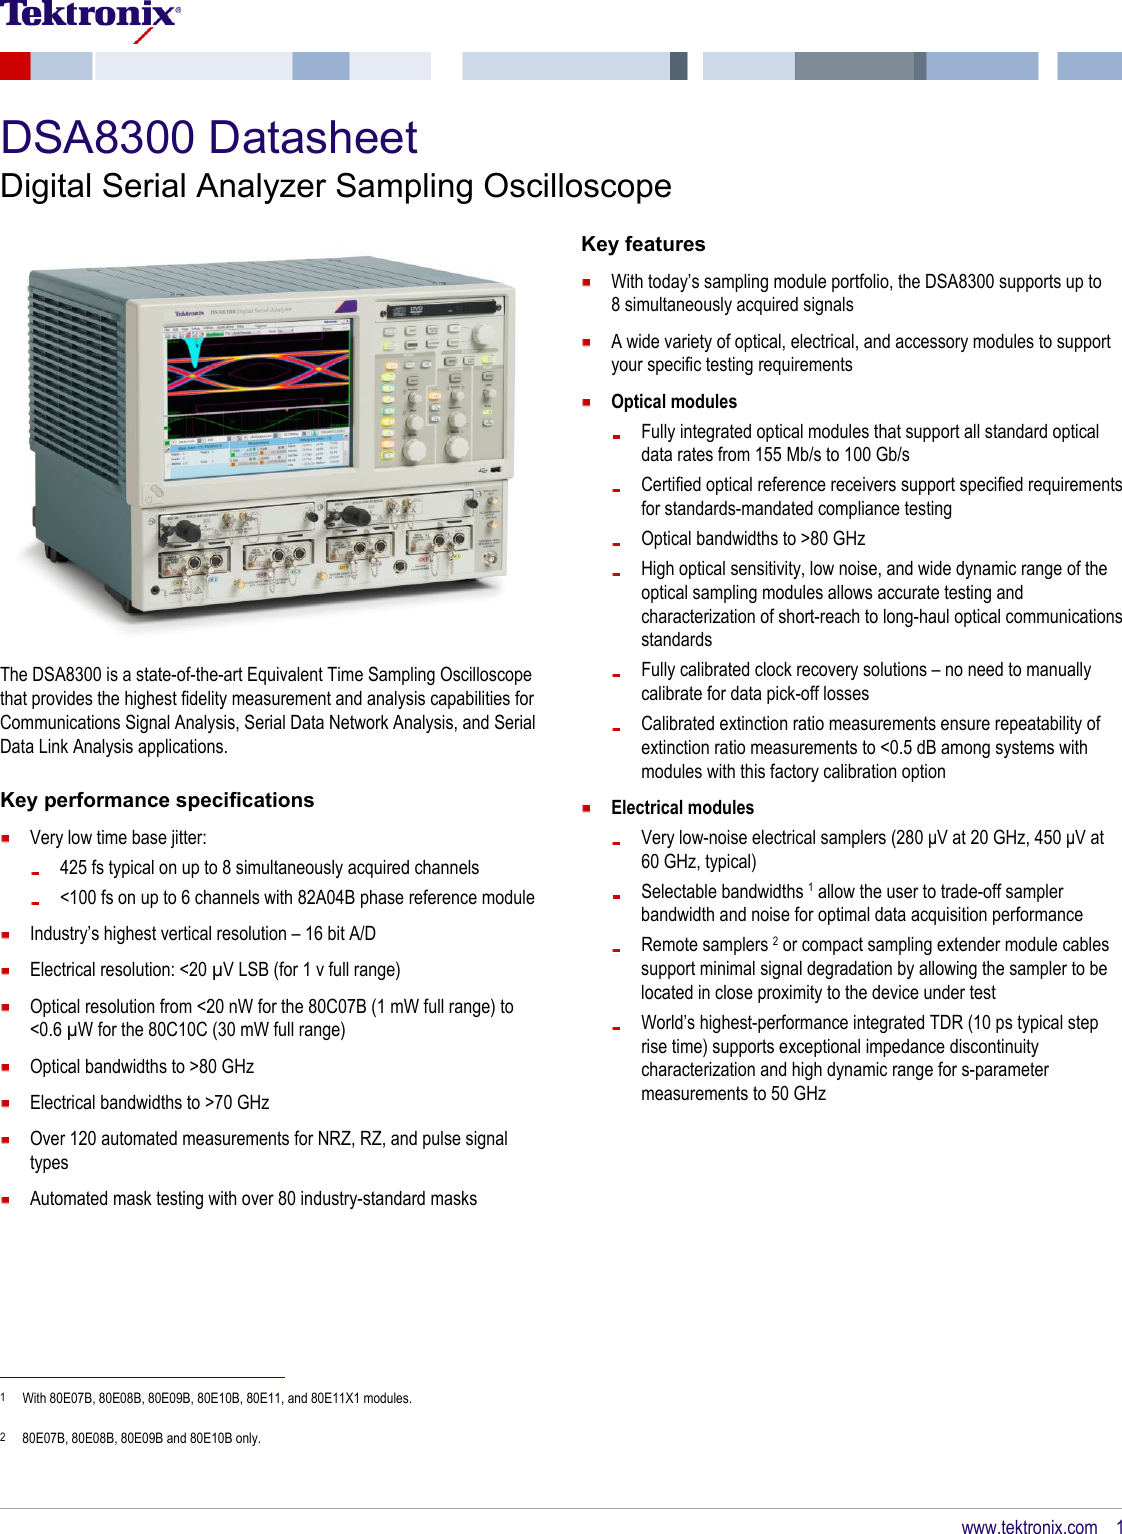 Dsa8300 Digital Serial Analyzer Sampling Oscilloscope Datasheet Multi Gigabit Link Analysis Datenblatt